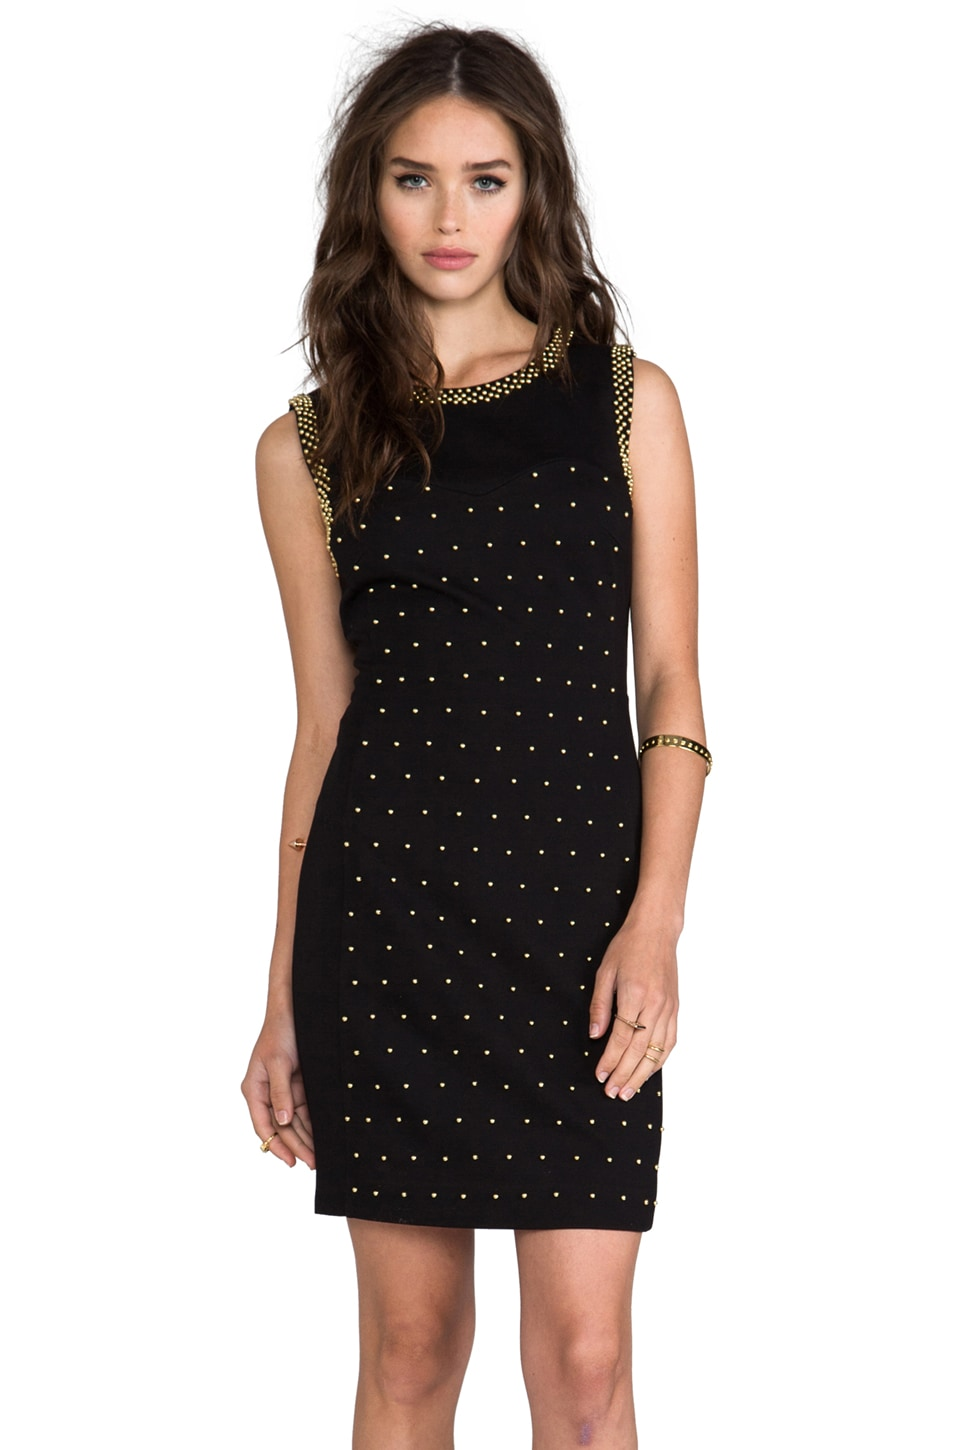 Juicy Couture Beaded Ponte Dress in Pitch Black